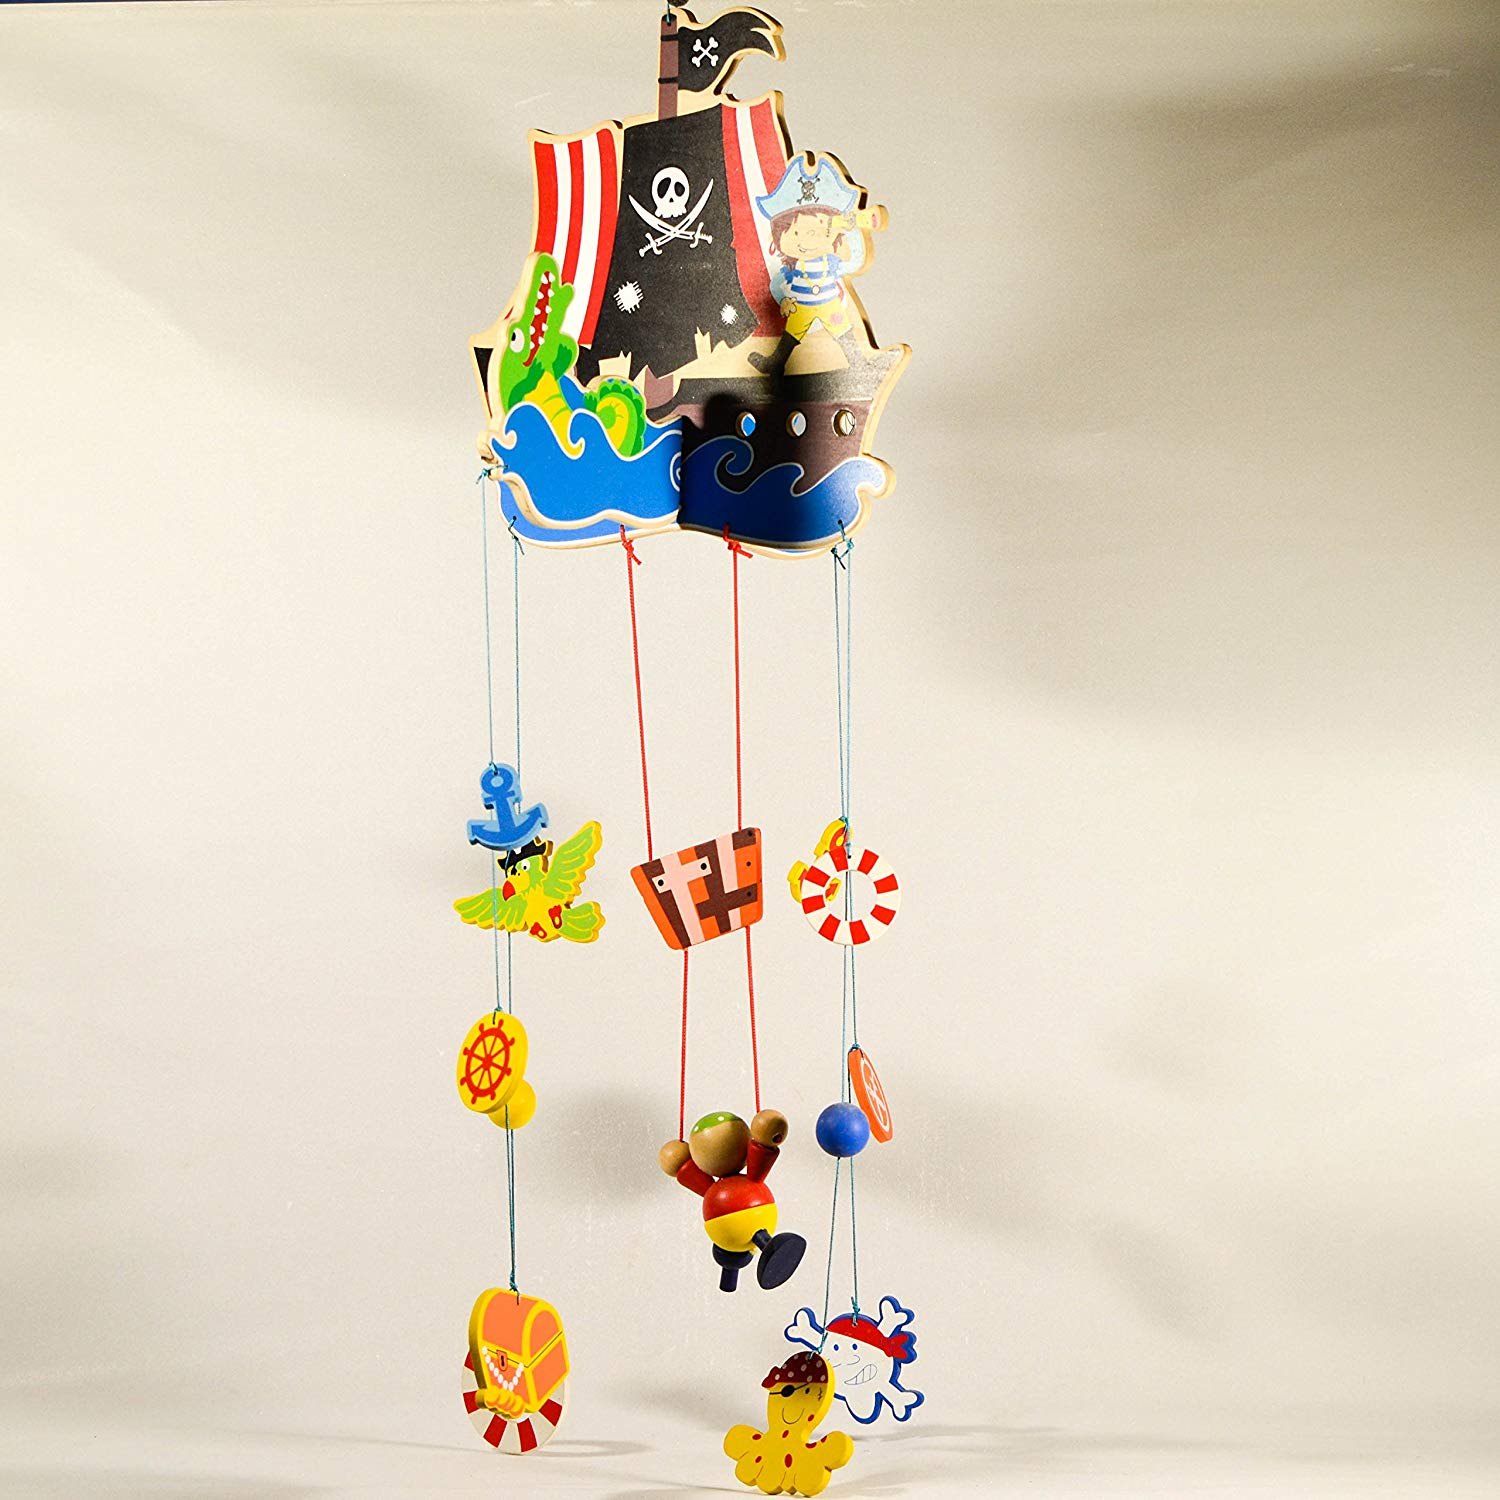 Pirate Ship Wooden Hanging Mobile - Nursery Decor - Hung Mobile Ornament - Baby Room Decor